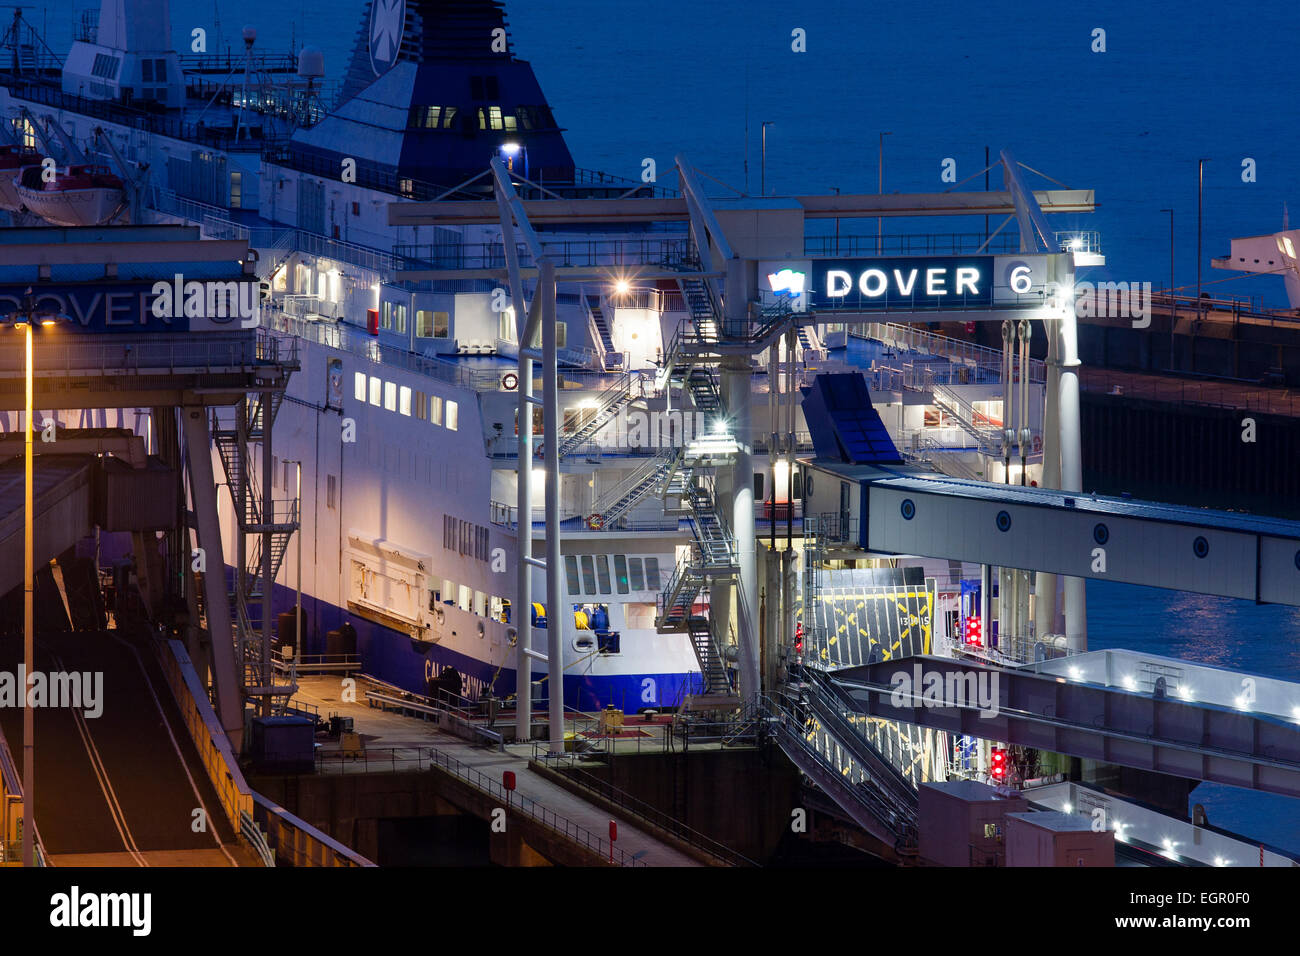 England, Dover. Docks, harbour. Night-time. Car ferry berthed at embarkation point 6 - Stock Image